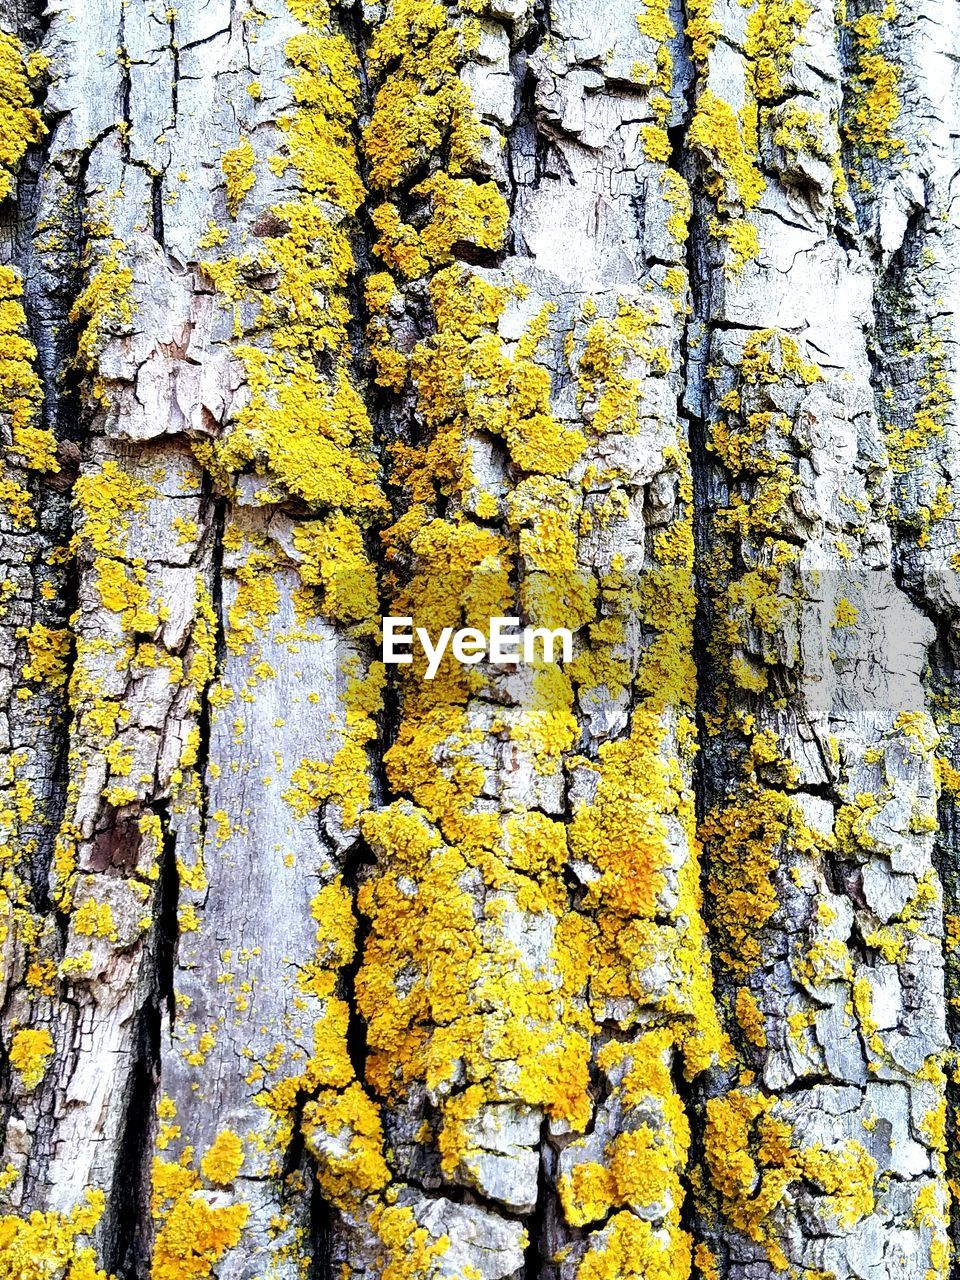 tree trunk, yellow, tree, textured, growth, full frame, lichen, backgrounds, bark, rough, day, outdoors, close-up, nature, no people, beauty in nature, plant, ivy